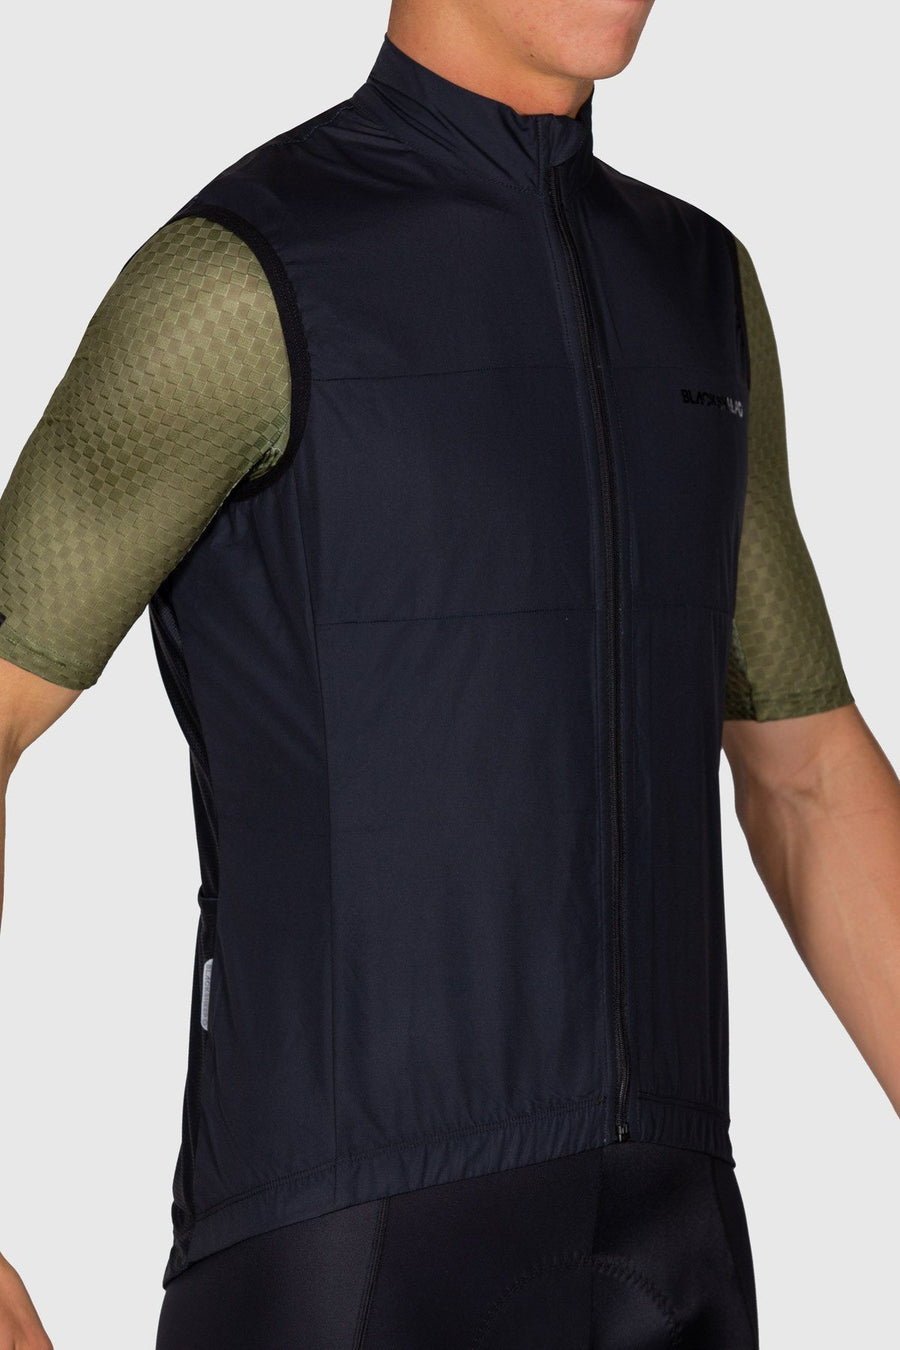 Euro Collection Men's Black Wind Vest